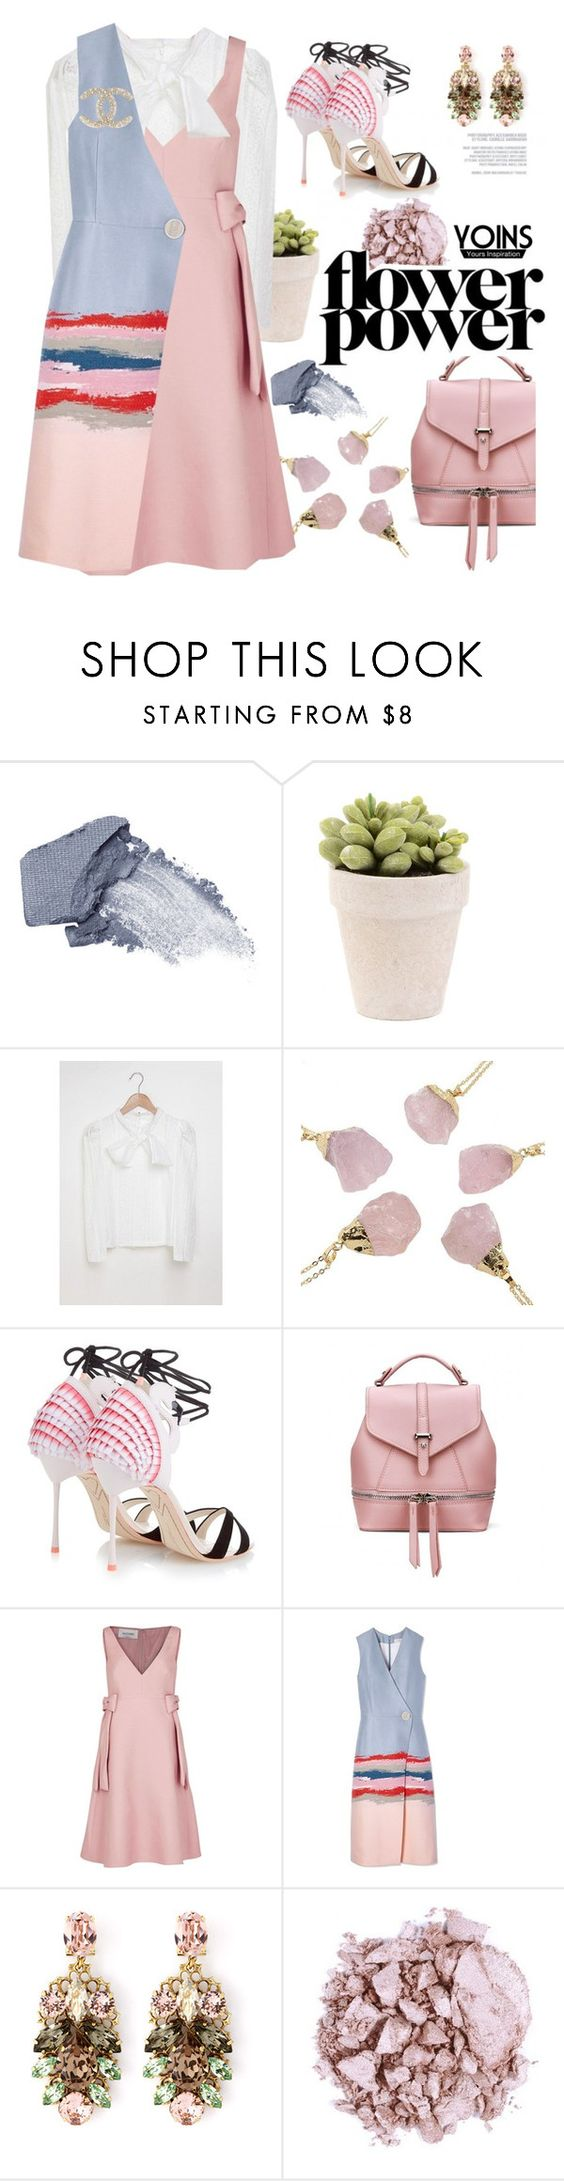 """Pastel perfect with yoins"" by pensivepeacock ❤ liked on Polyvore featuring Origins, Sophia Webster, Valentino, Tory Burch, Anton Heunis and MustHave"